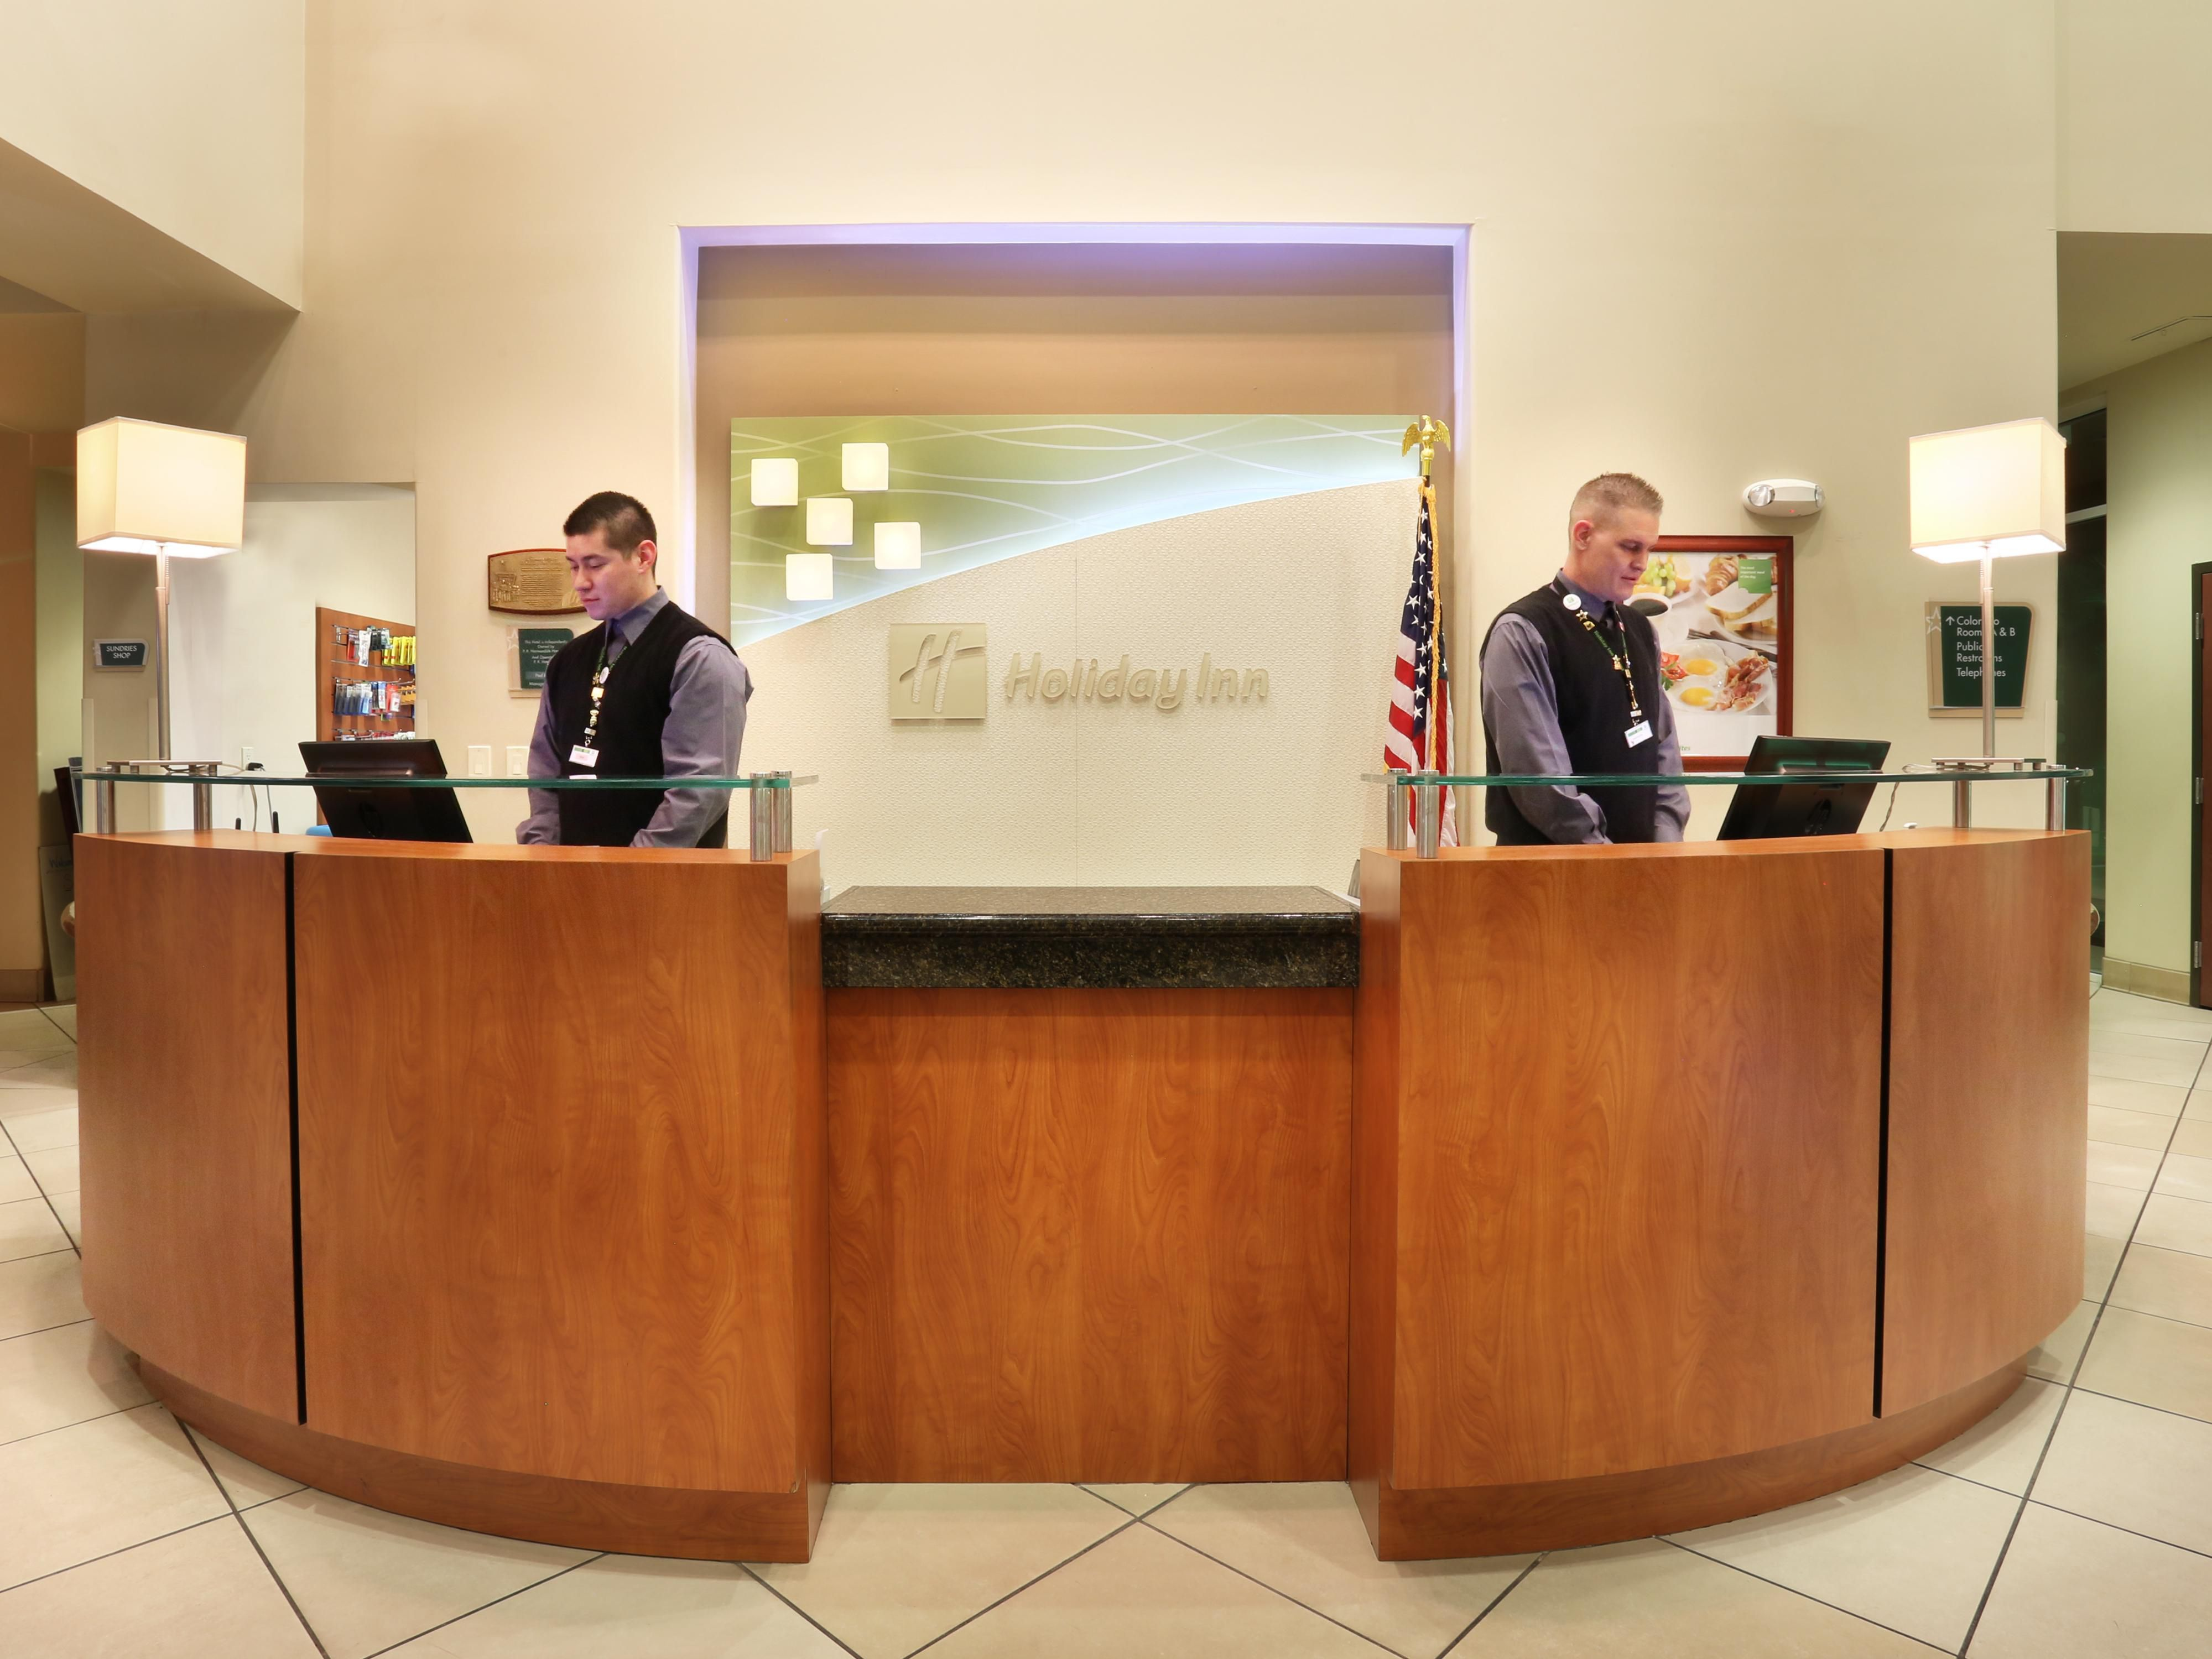 Our Front Desk staff is ready and willing to assist you